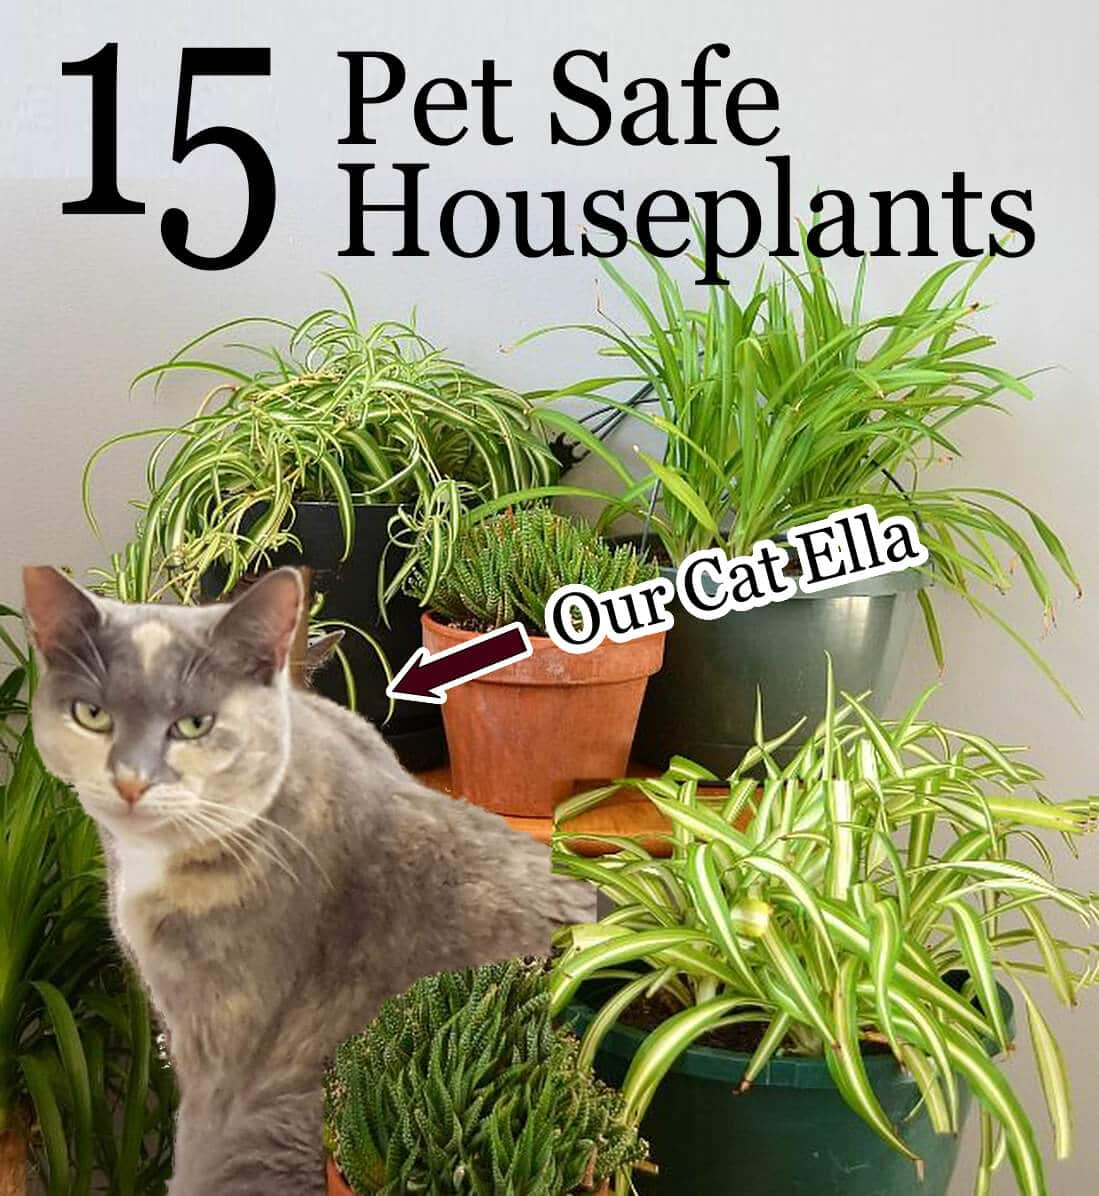 Pet Friendly Flooring Options For Cat And Dog Owners: Non Toxic Houseplants For Pets